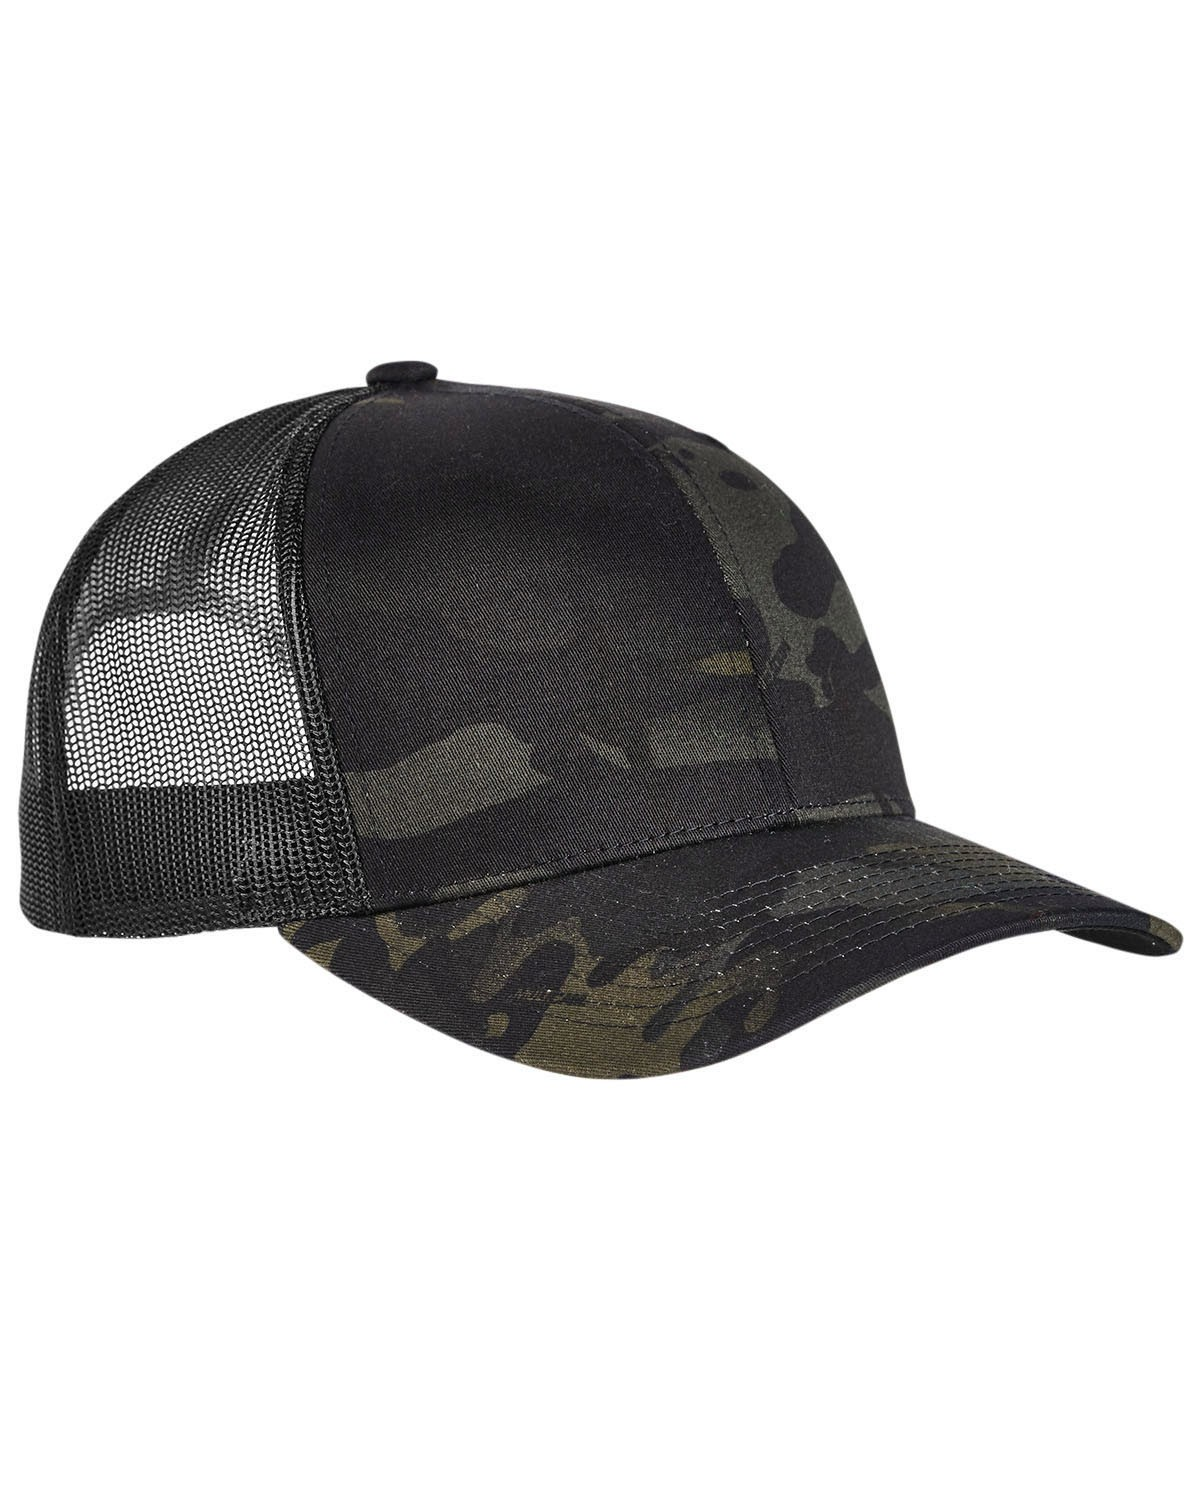 6006MC Yupoong BLACK MULTICAM